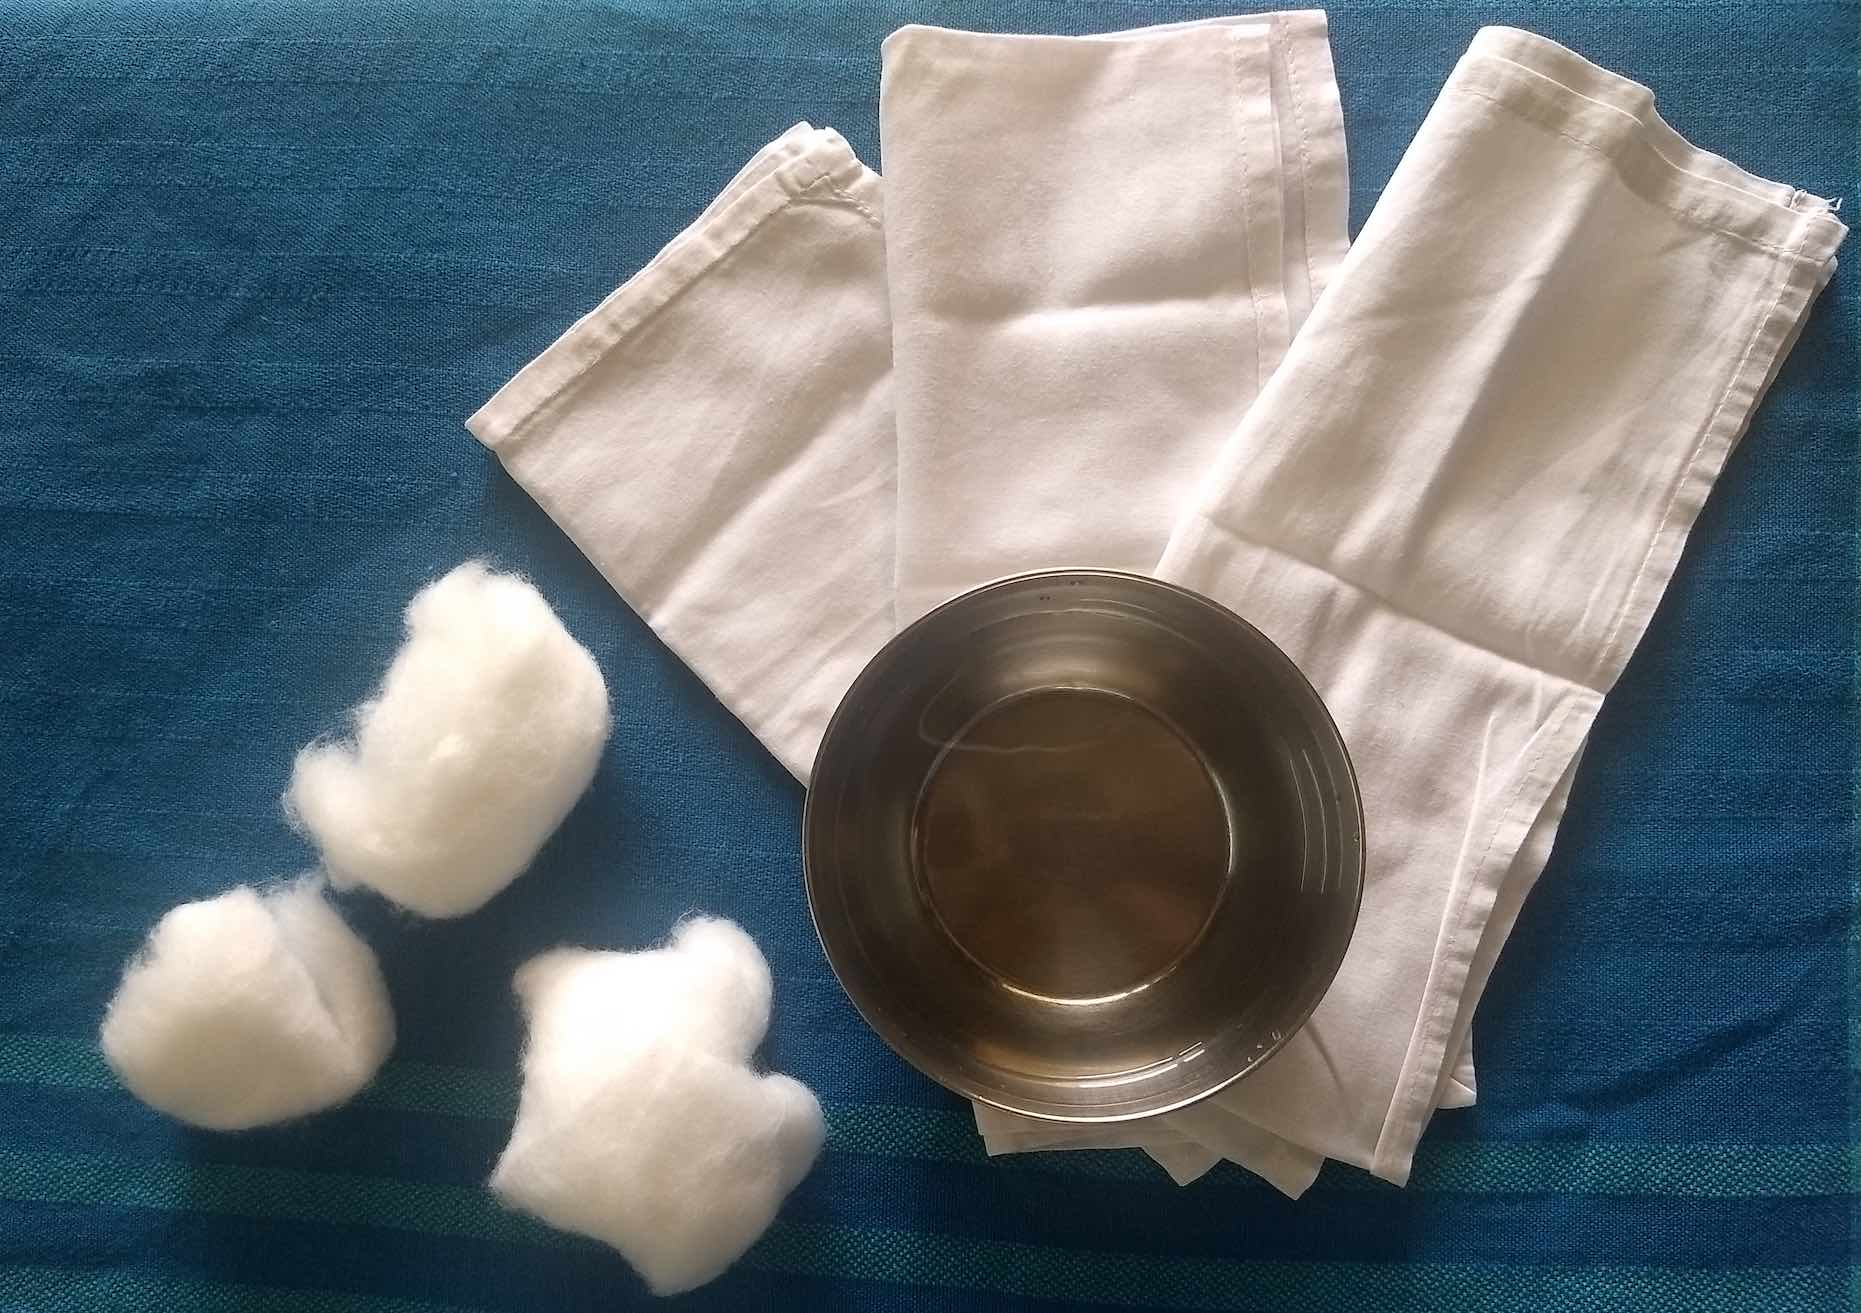 reusable baby wipes; soft muslin napkin; cotton balls with water